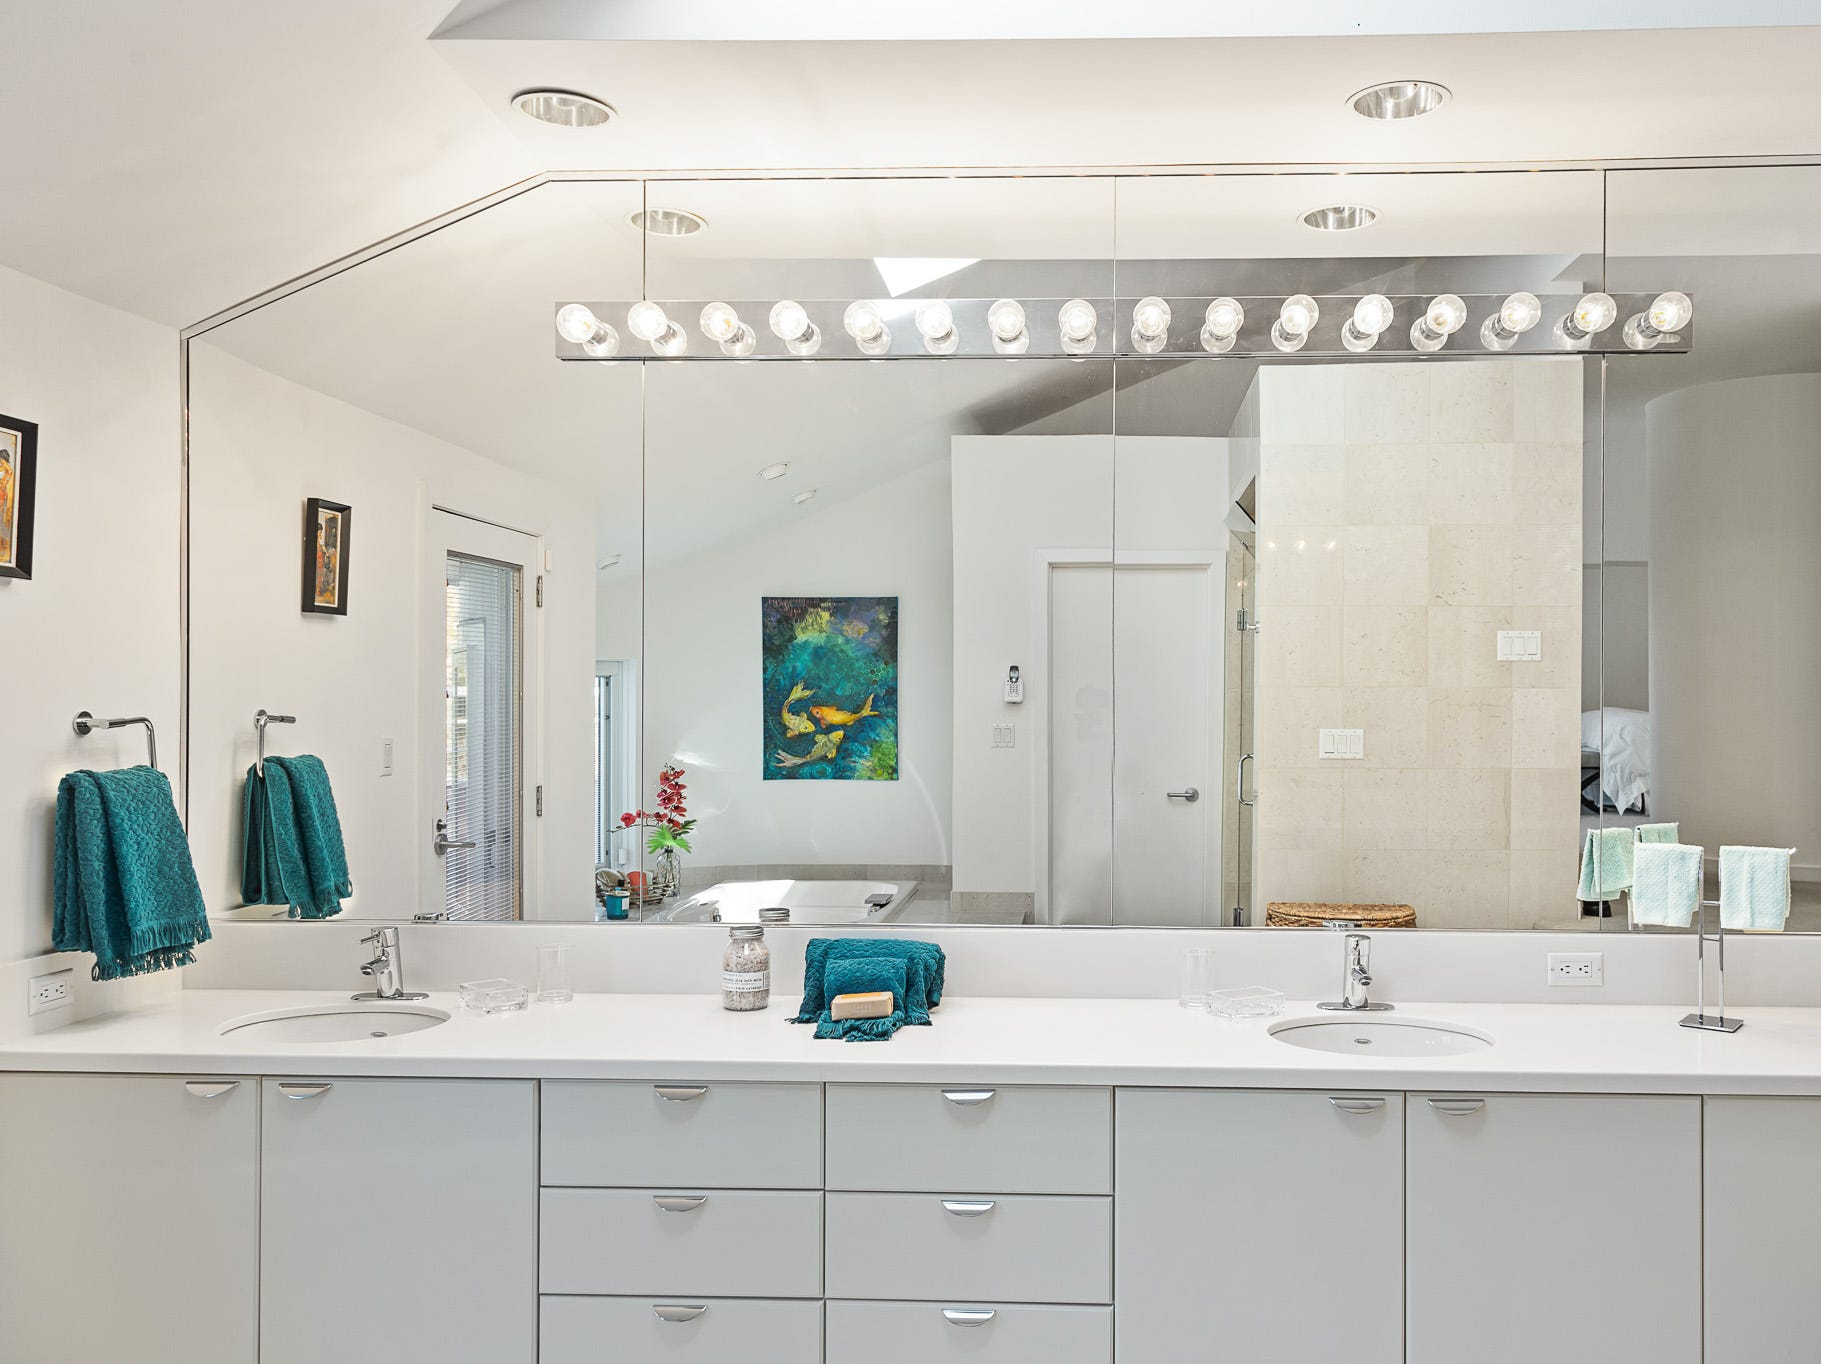 The master bath at 3611 Centerville Road in Greenville features a skylight, jetted tub and steam shower.